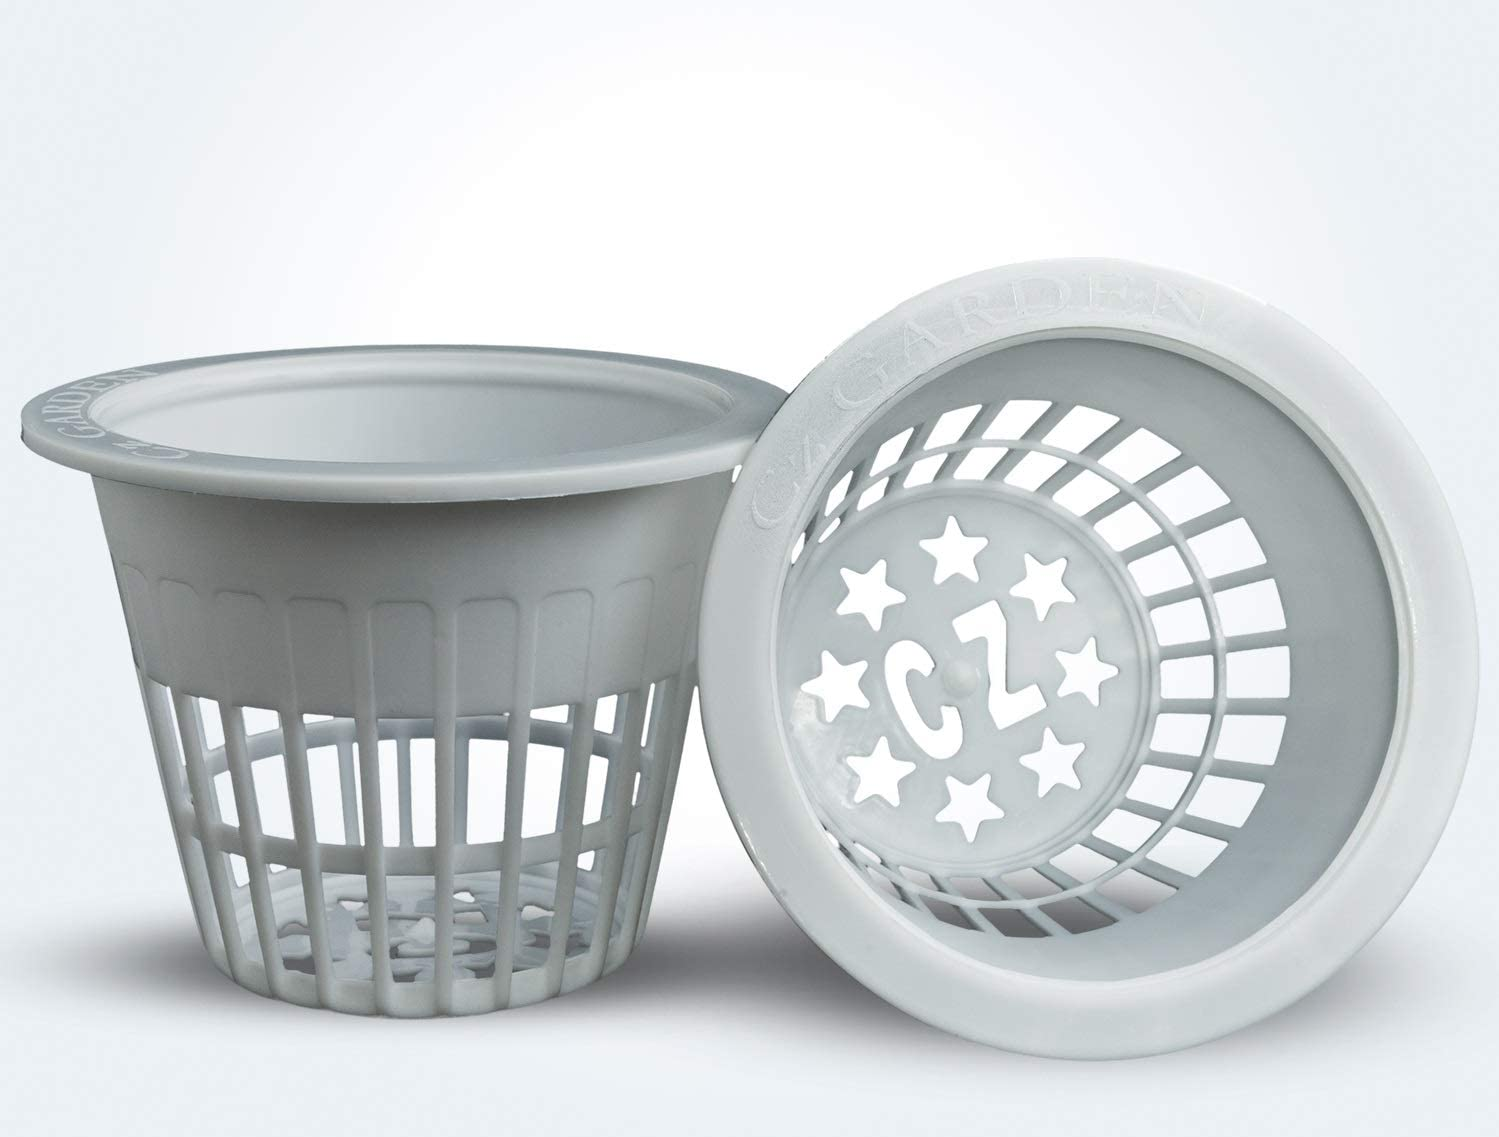 12 Pack - Cz All Star Round Heavy Duty Net Cups Pots Wide Lip Design - Orchids • Aquaponics • Aquaculture • Hydroponics Slotted Mesh by Cz Garden (3 inch Cz All Star Net Pots – 12 White)